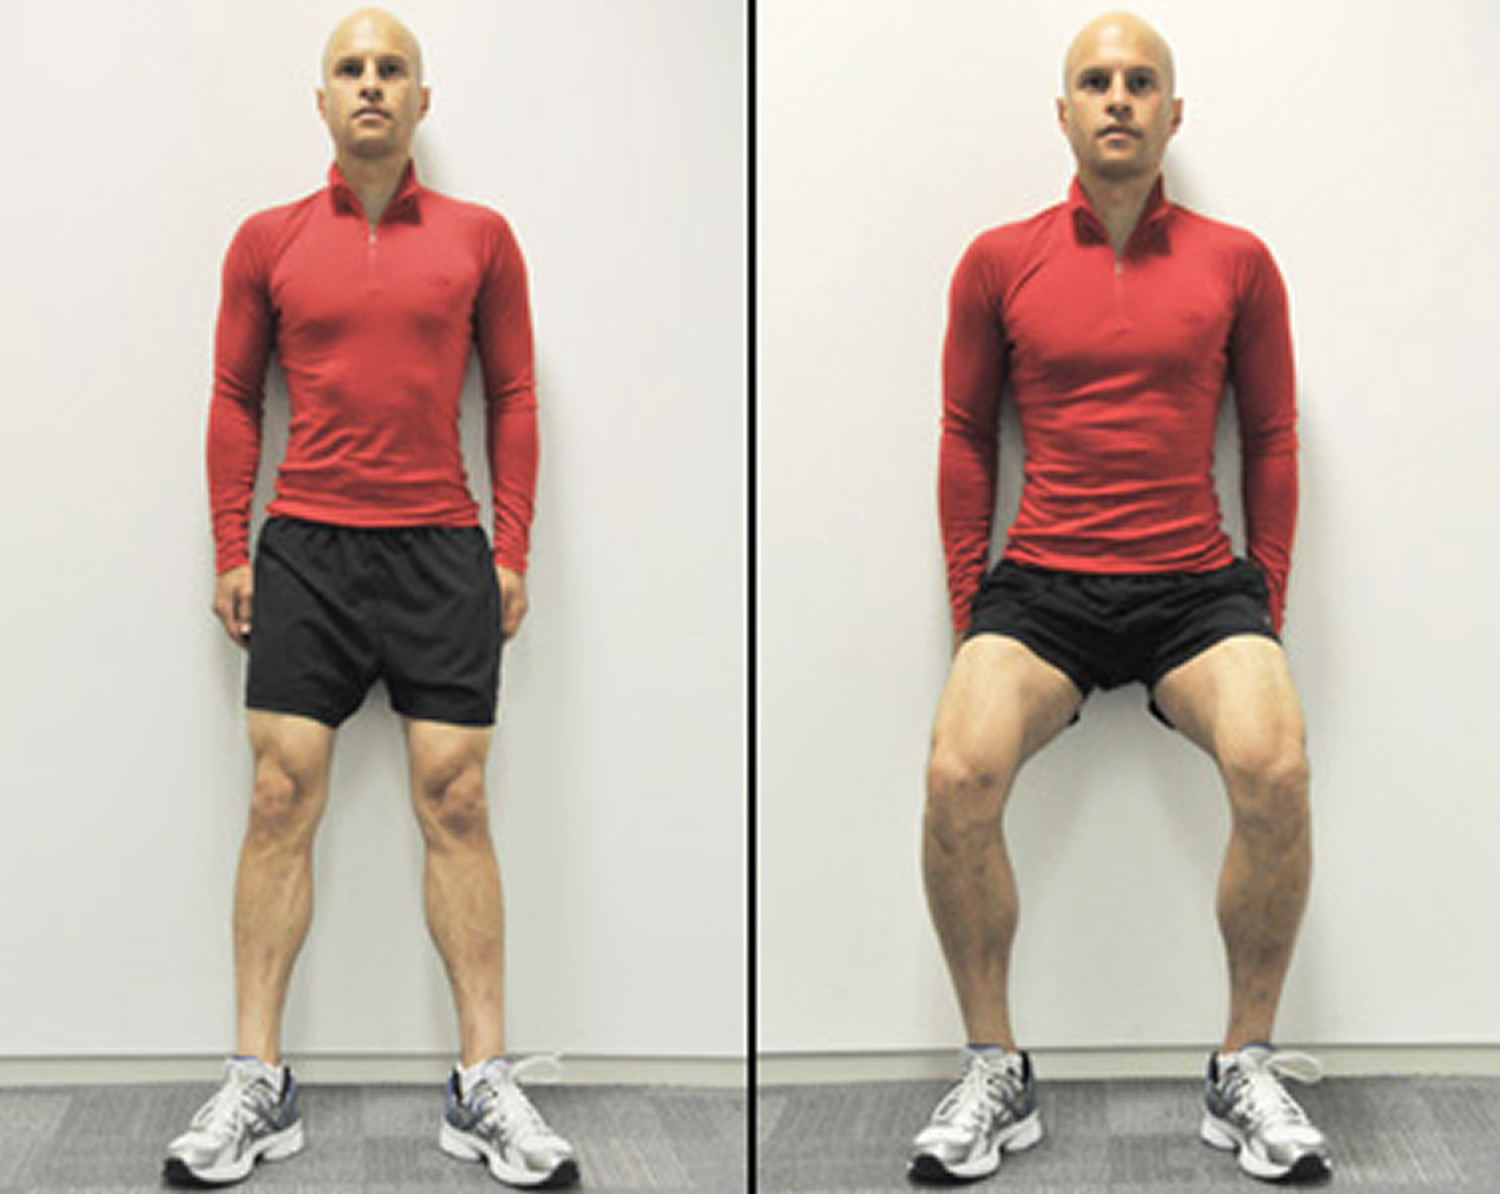 Knee bends exercise for knee pain